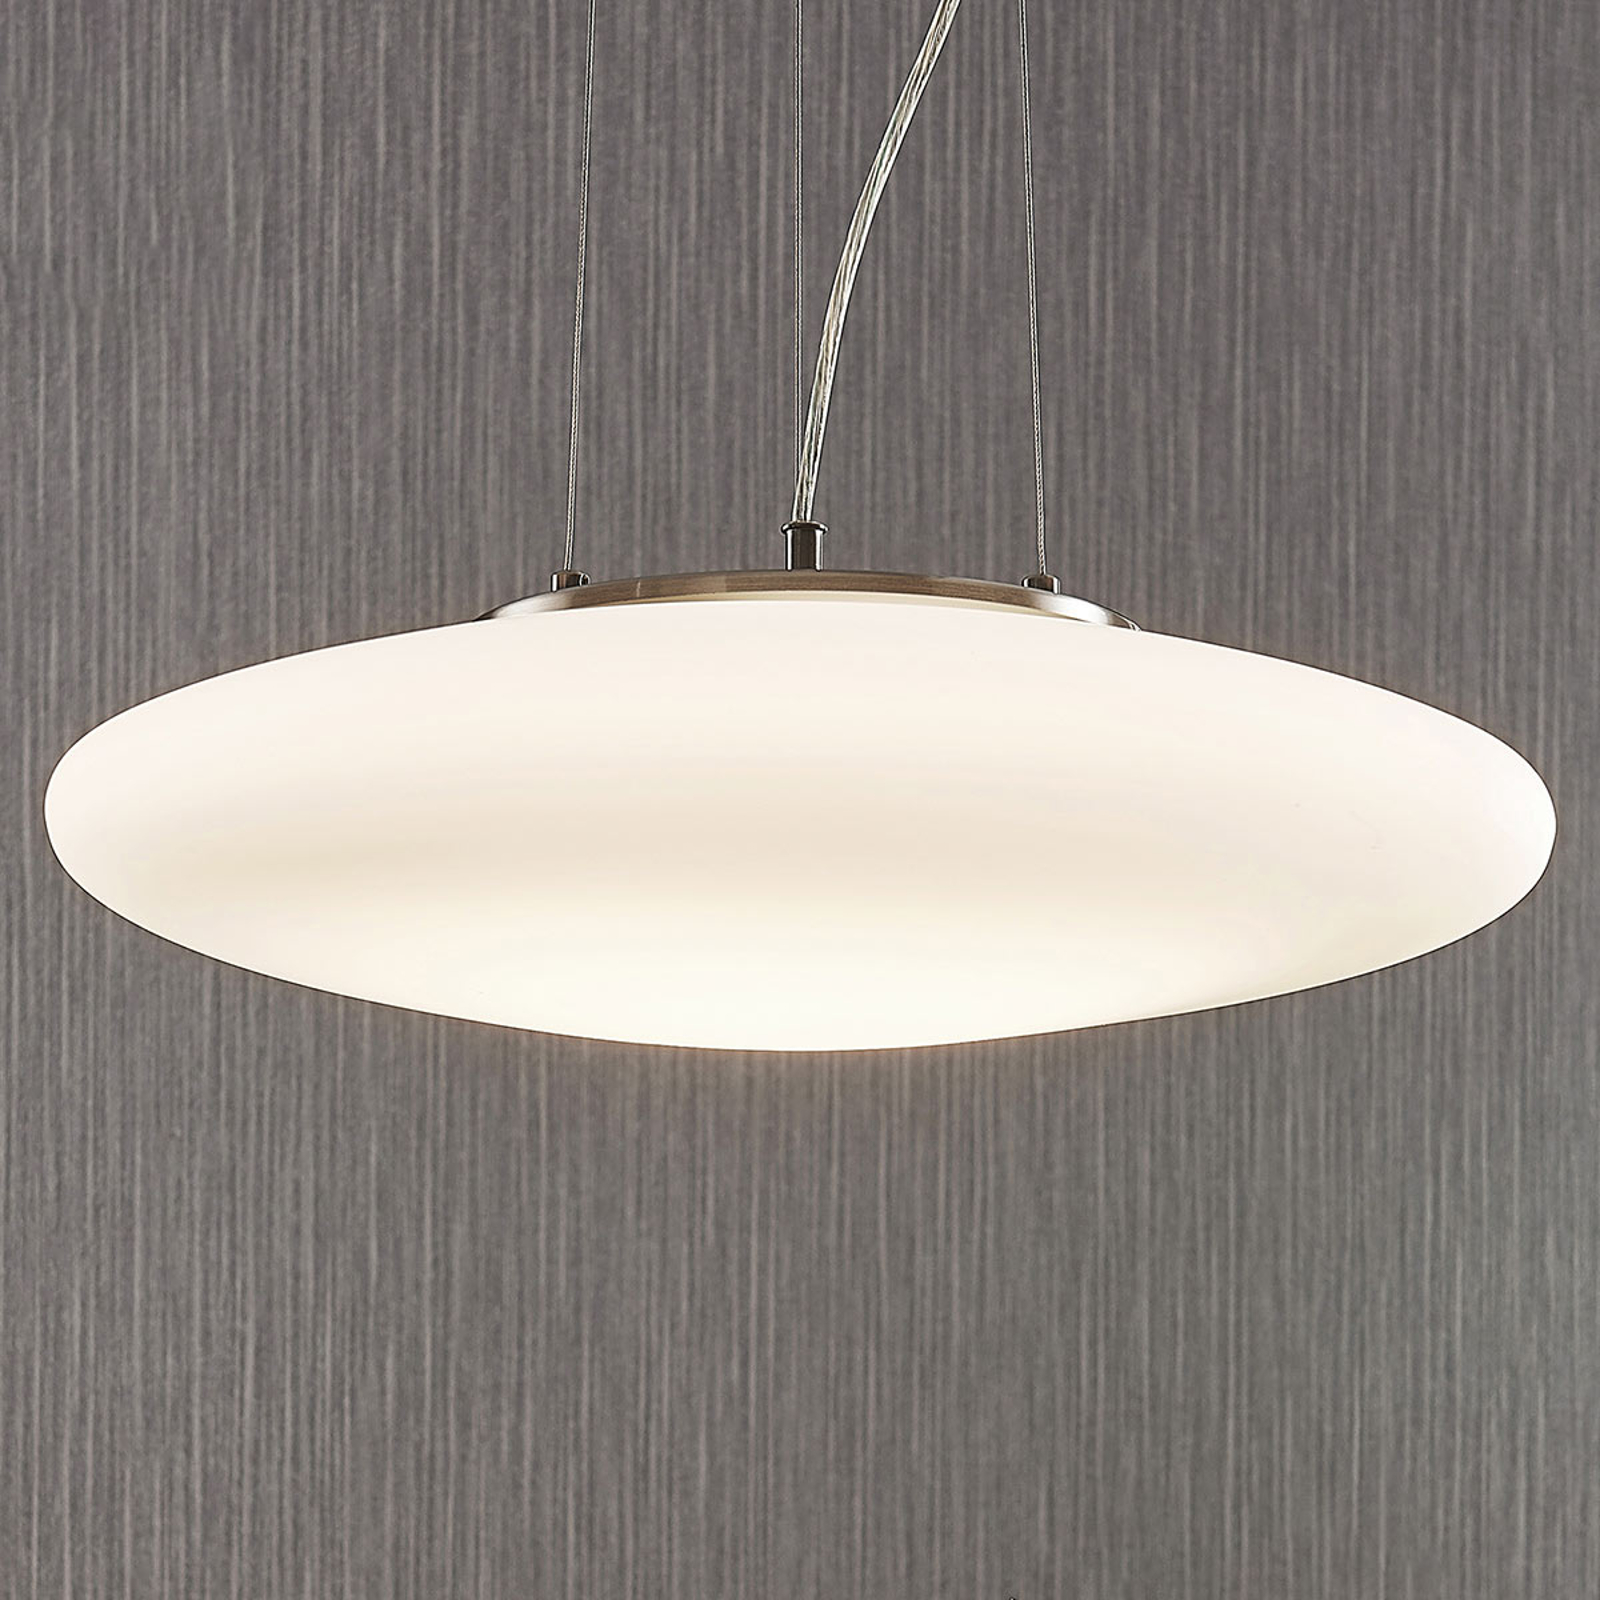 Suspension LED Gunda verre opale blanc